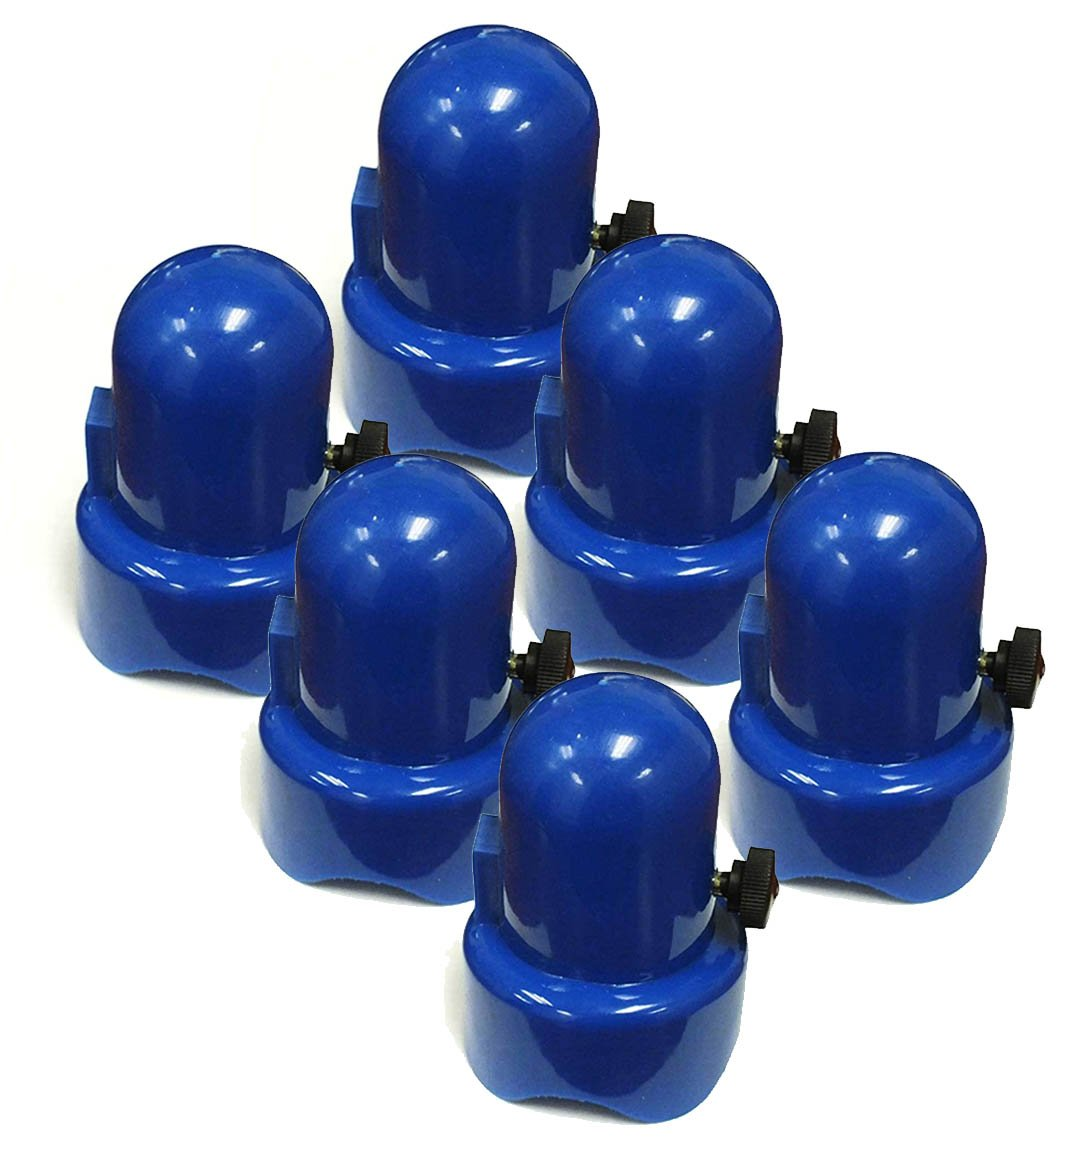 SkyBound 1.5'' Diameter Blue Trampoline Enclosure Pole Caps (pack of 6) by Skybound